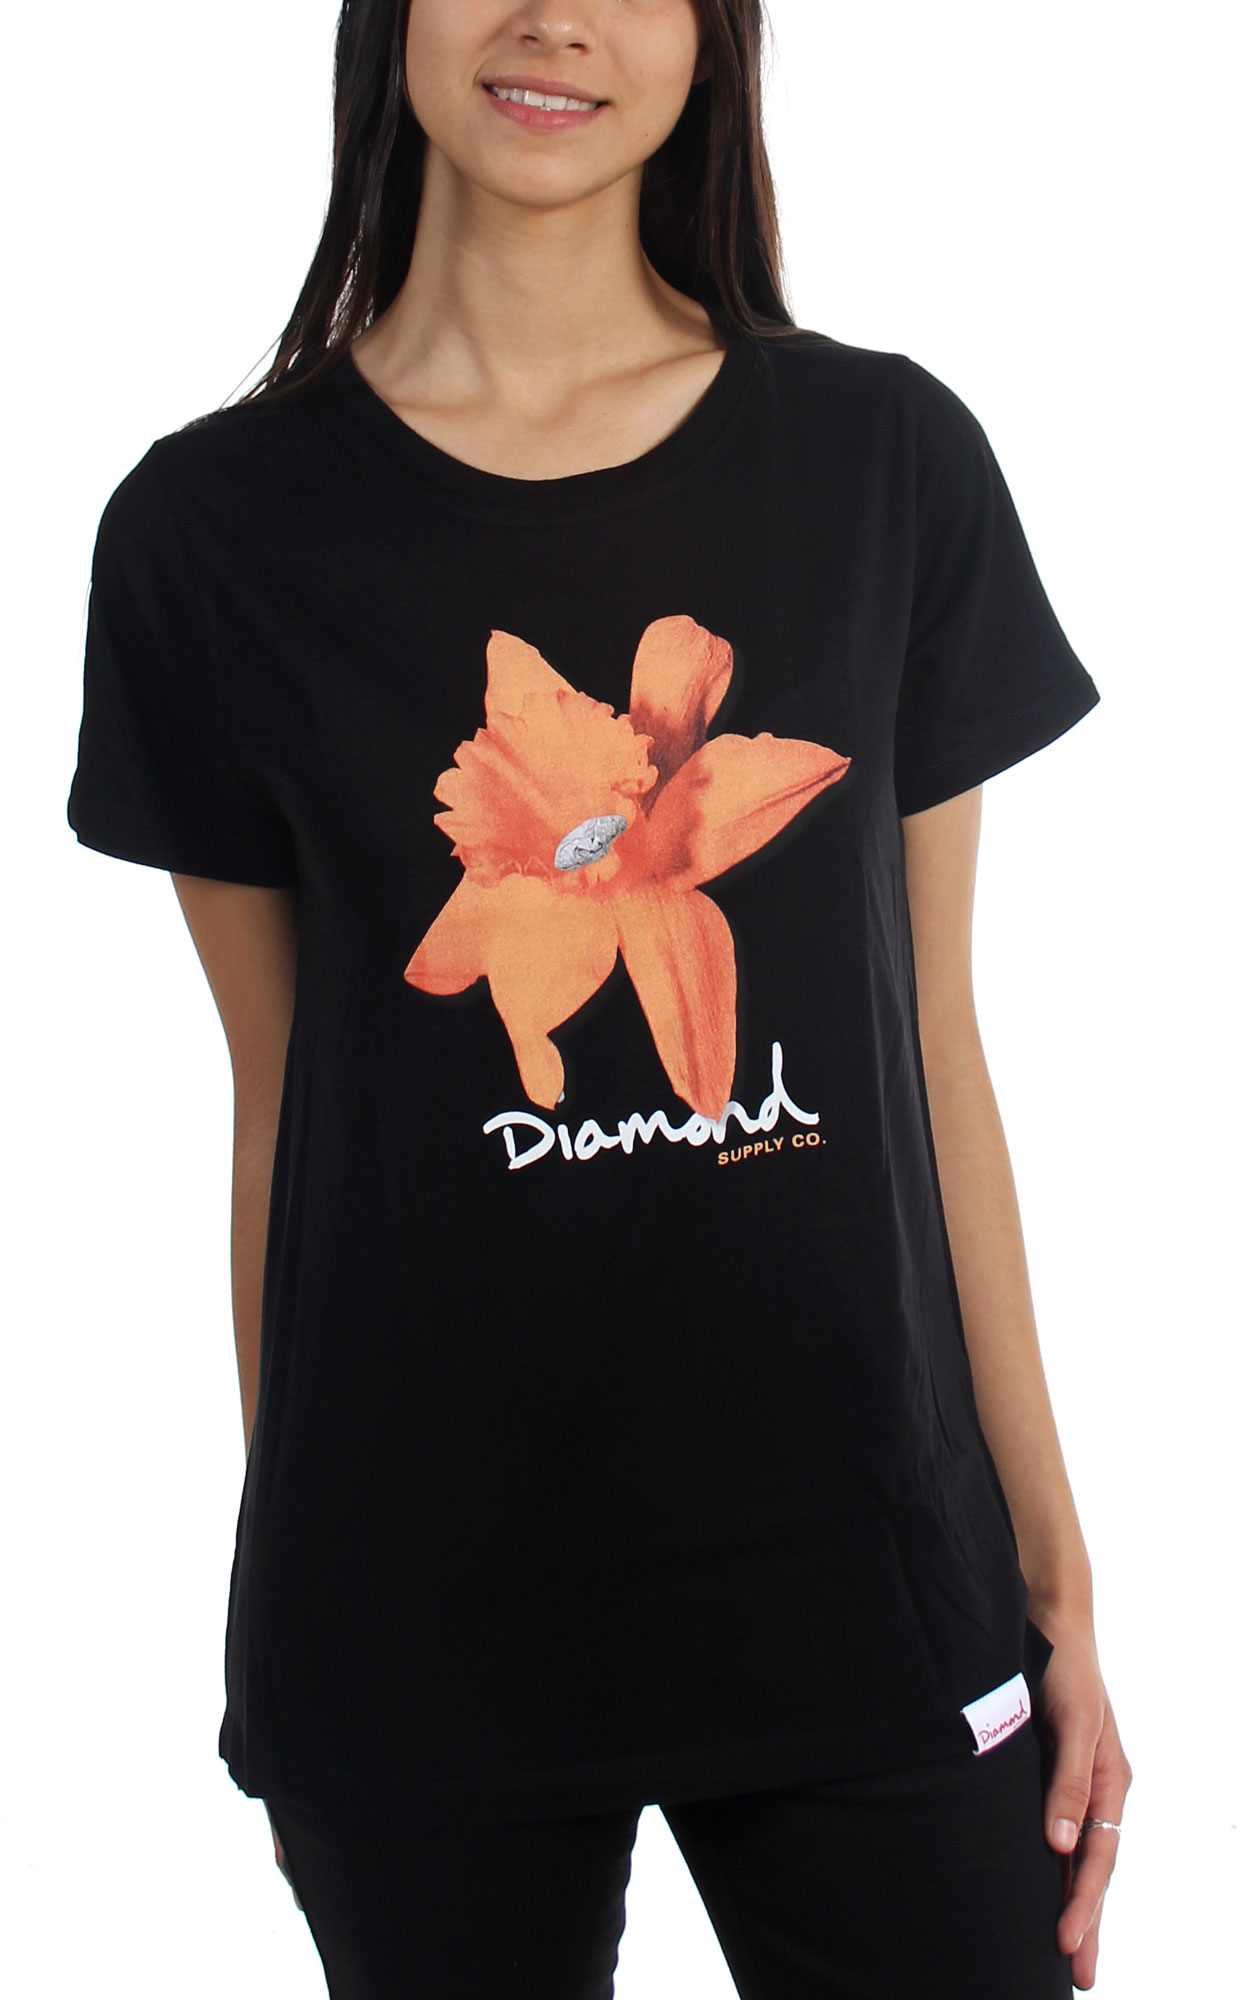 Shop Diamond Supply Co clothing, shoes, and accessories, including Diamond shirts, hats, tanks, and more. Tillys offers a variety of Diamond Supply clothing as well as shoes & accessories. DIAMOND SUPPLY CO. Rose Block Diamond Womens Tee $ DIAMOND SUPPLY CO. .